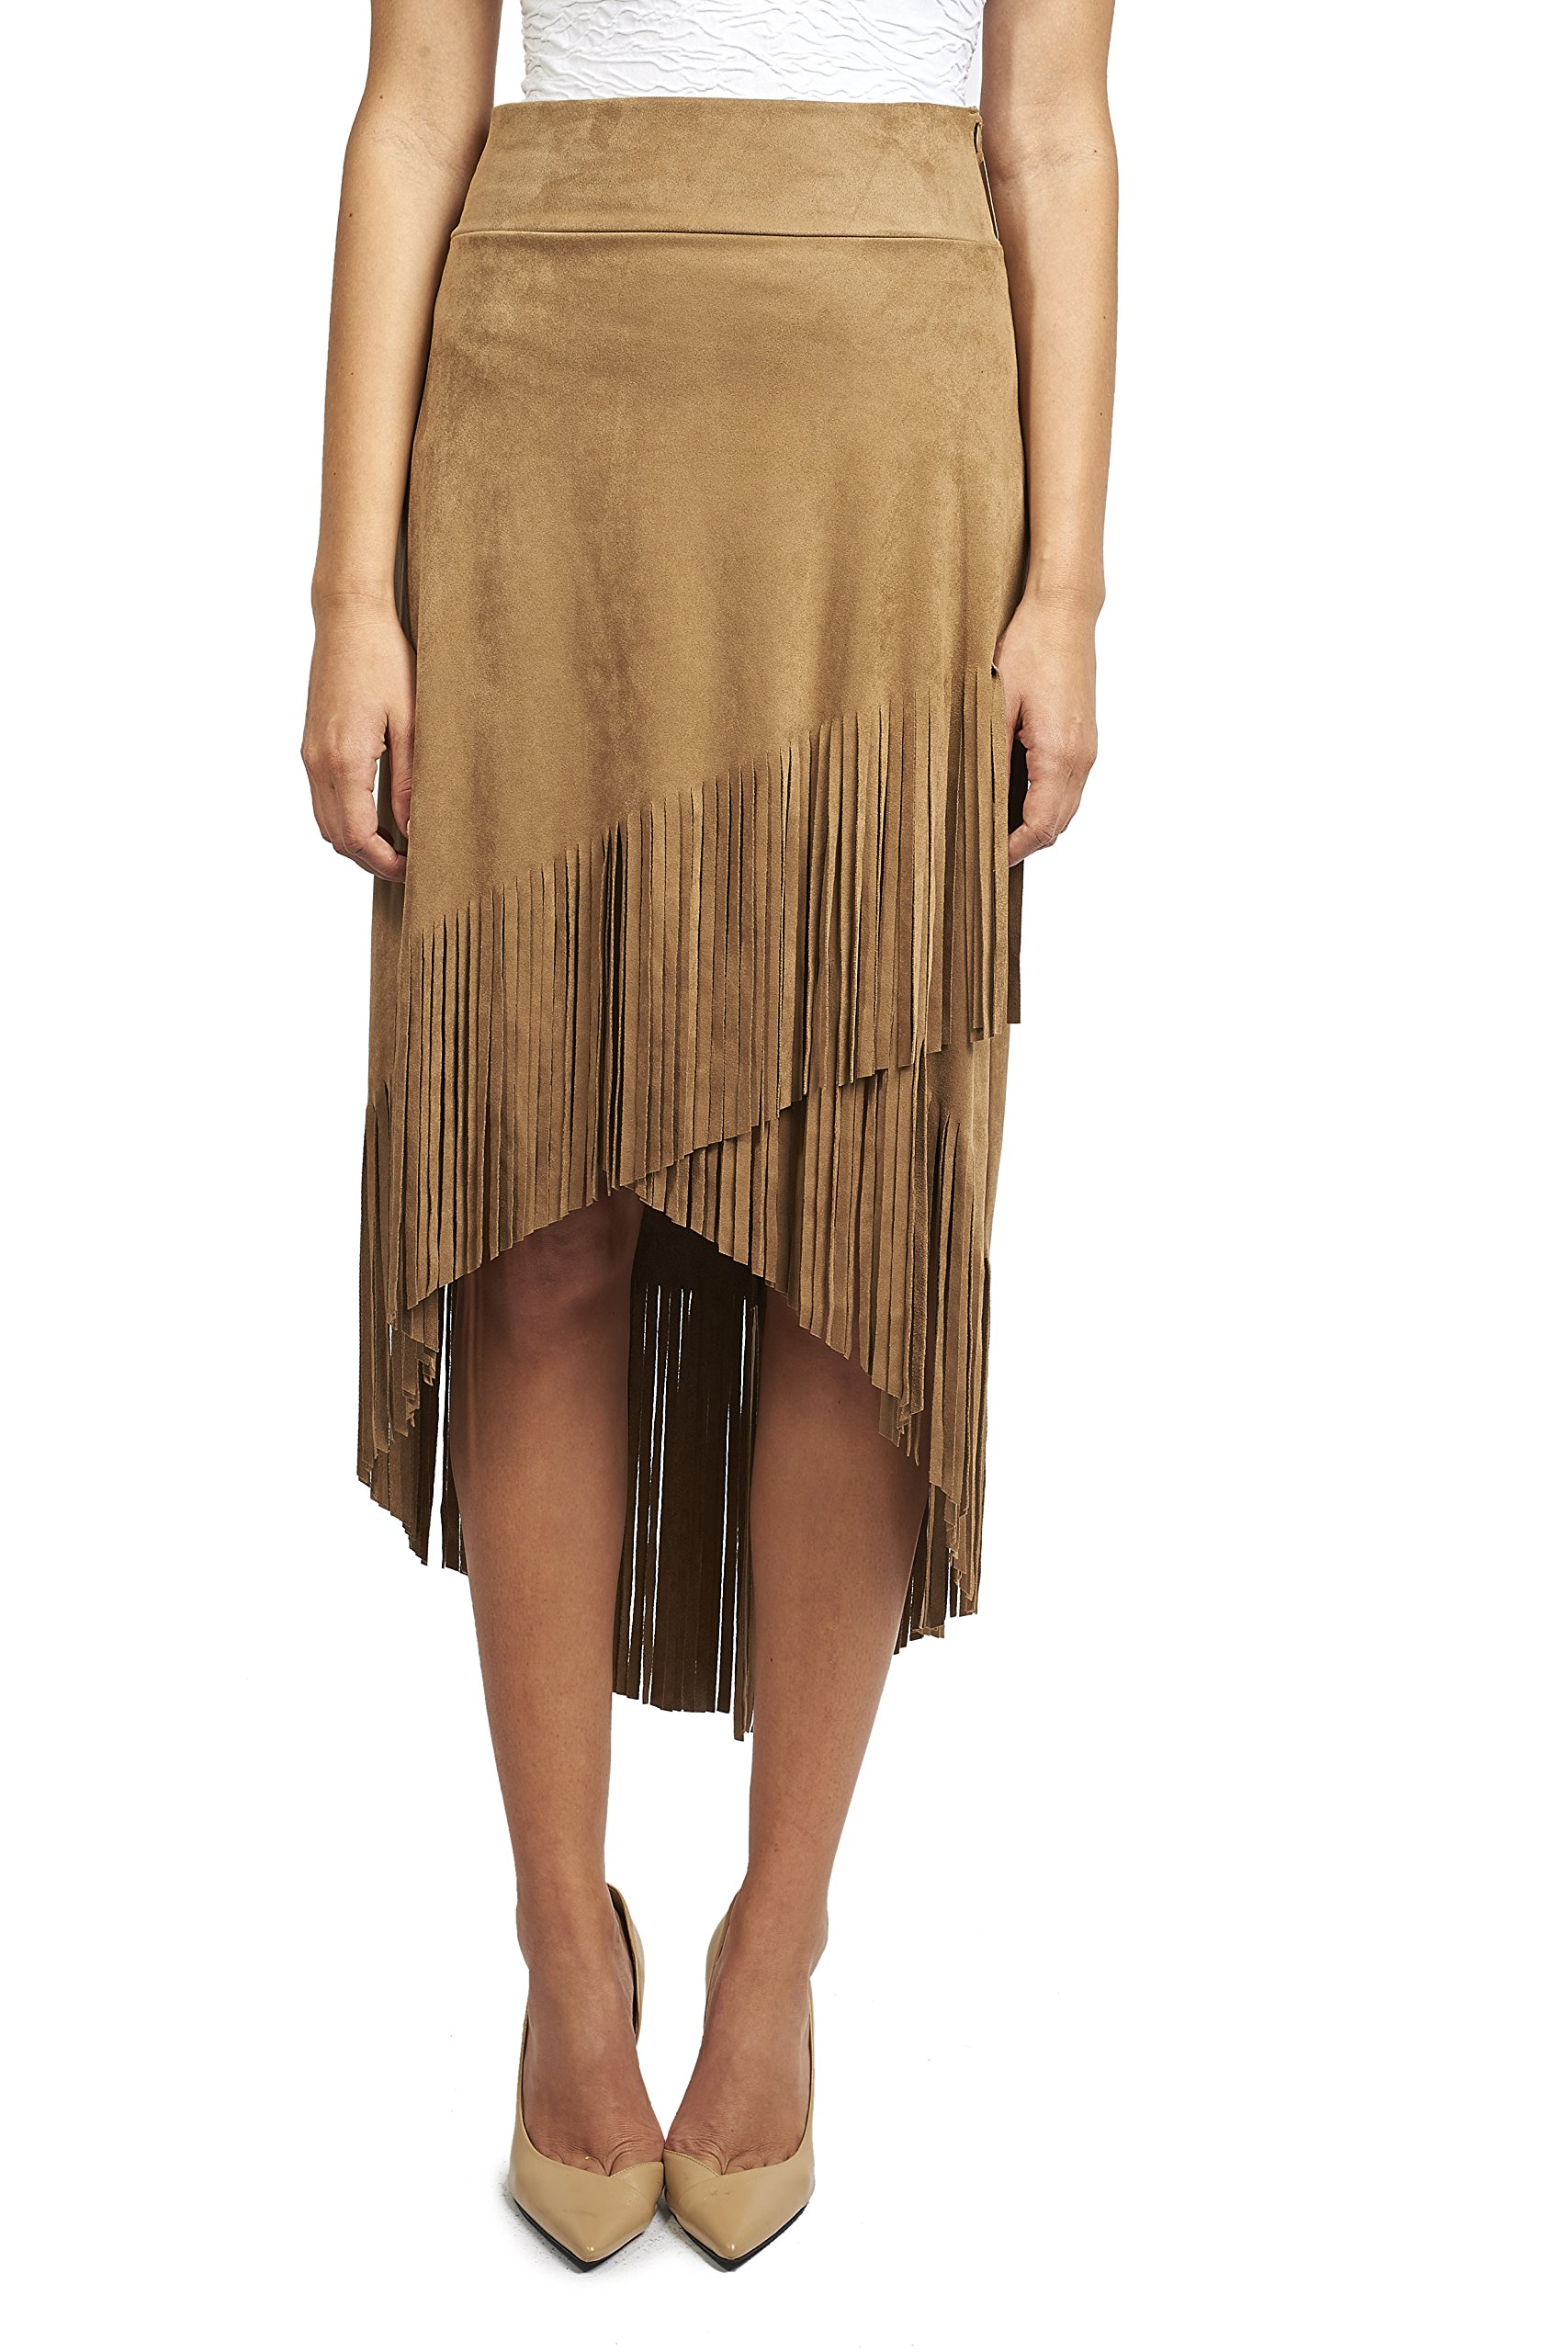 Joseph Ribkoff Faux Suede Asymmetric Skirt with Fringe Style 171388 - Size 14 by Joseph Ribkoff (Image #4)